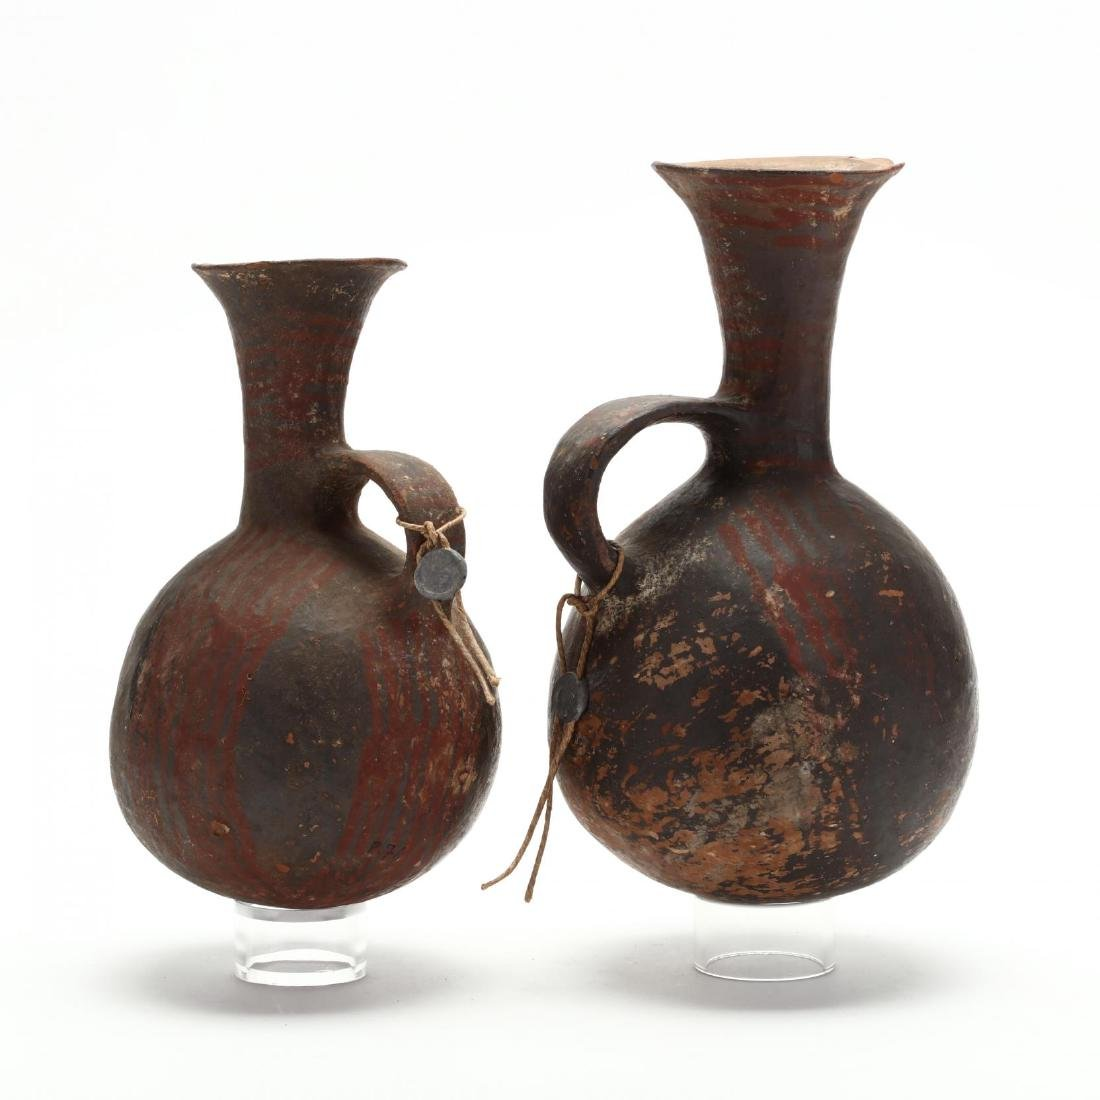 Near Pair of Middle Bronze Age Pitchers - 4